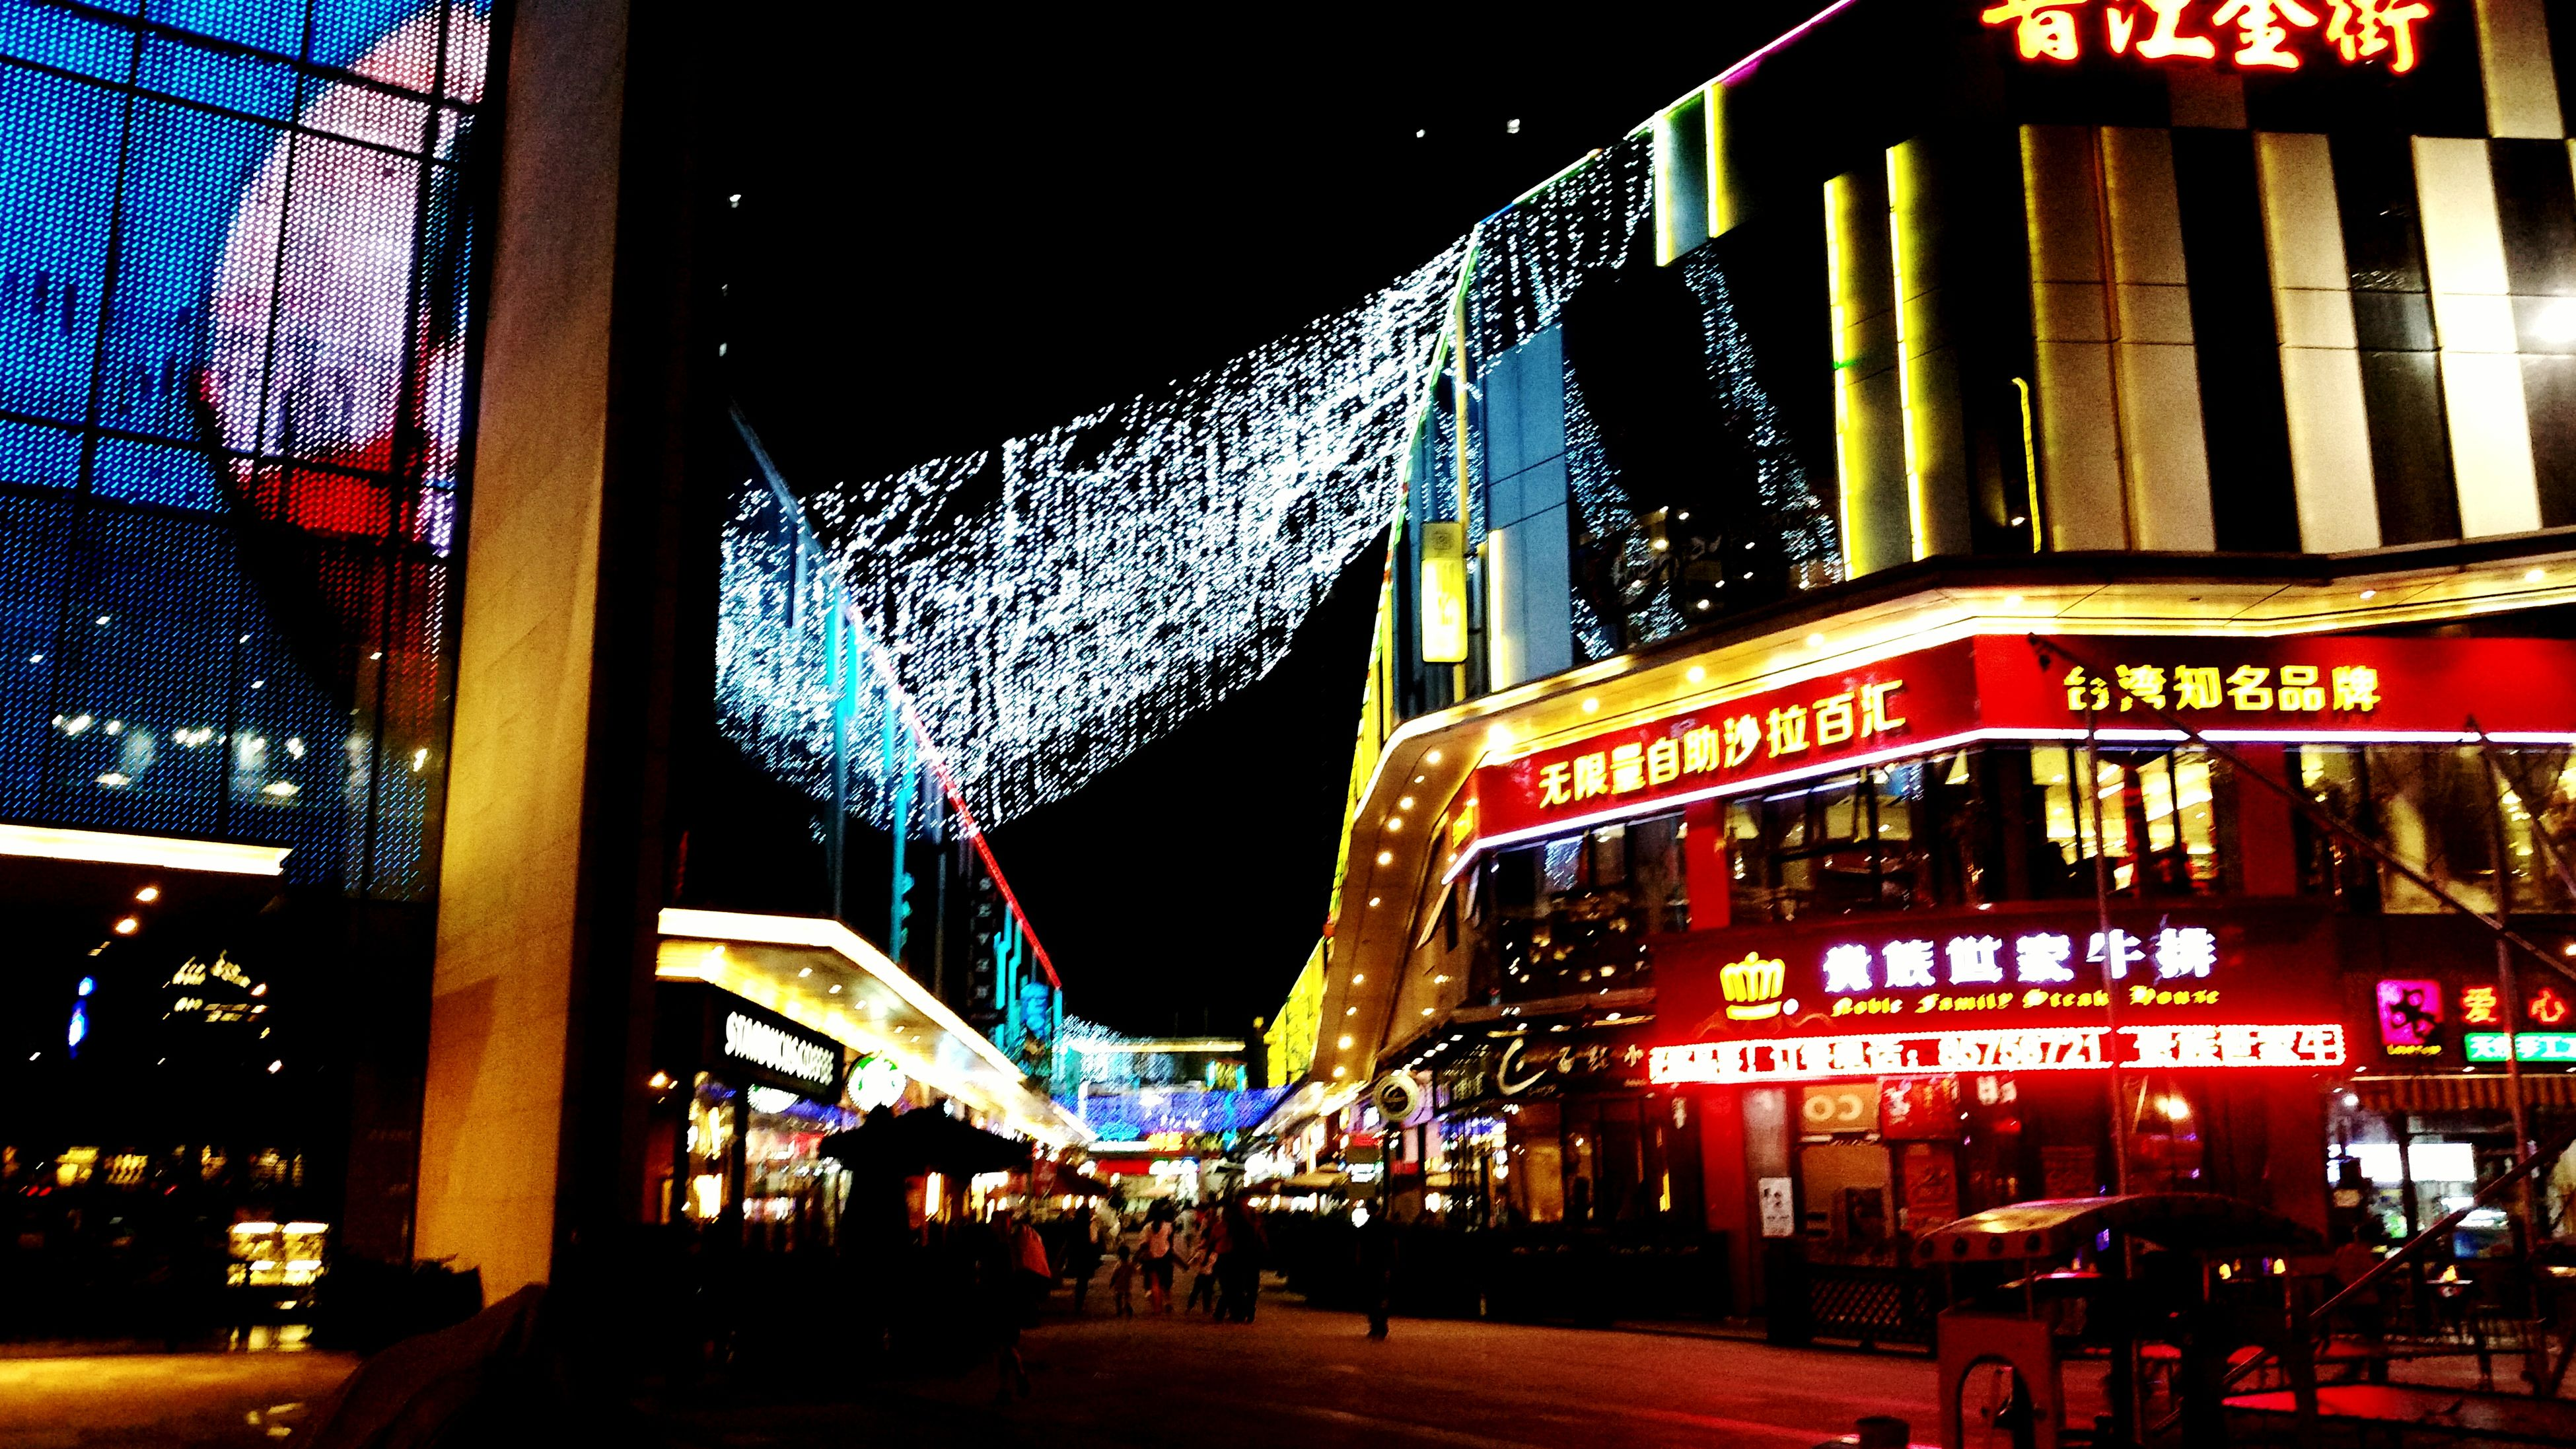 illuminated, night, city, building exterior, architecture, built structure, incidental people, low angle view, city life, lighting equipment, modern, travel destinations, neon, decoration, nightlife, tourism, electric light, outdoors, skyscraper, sky, multi colored, commercial sign, fairy lights